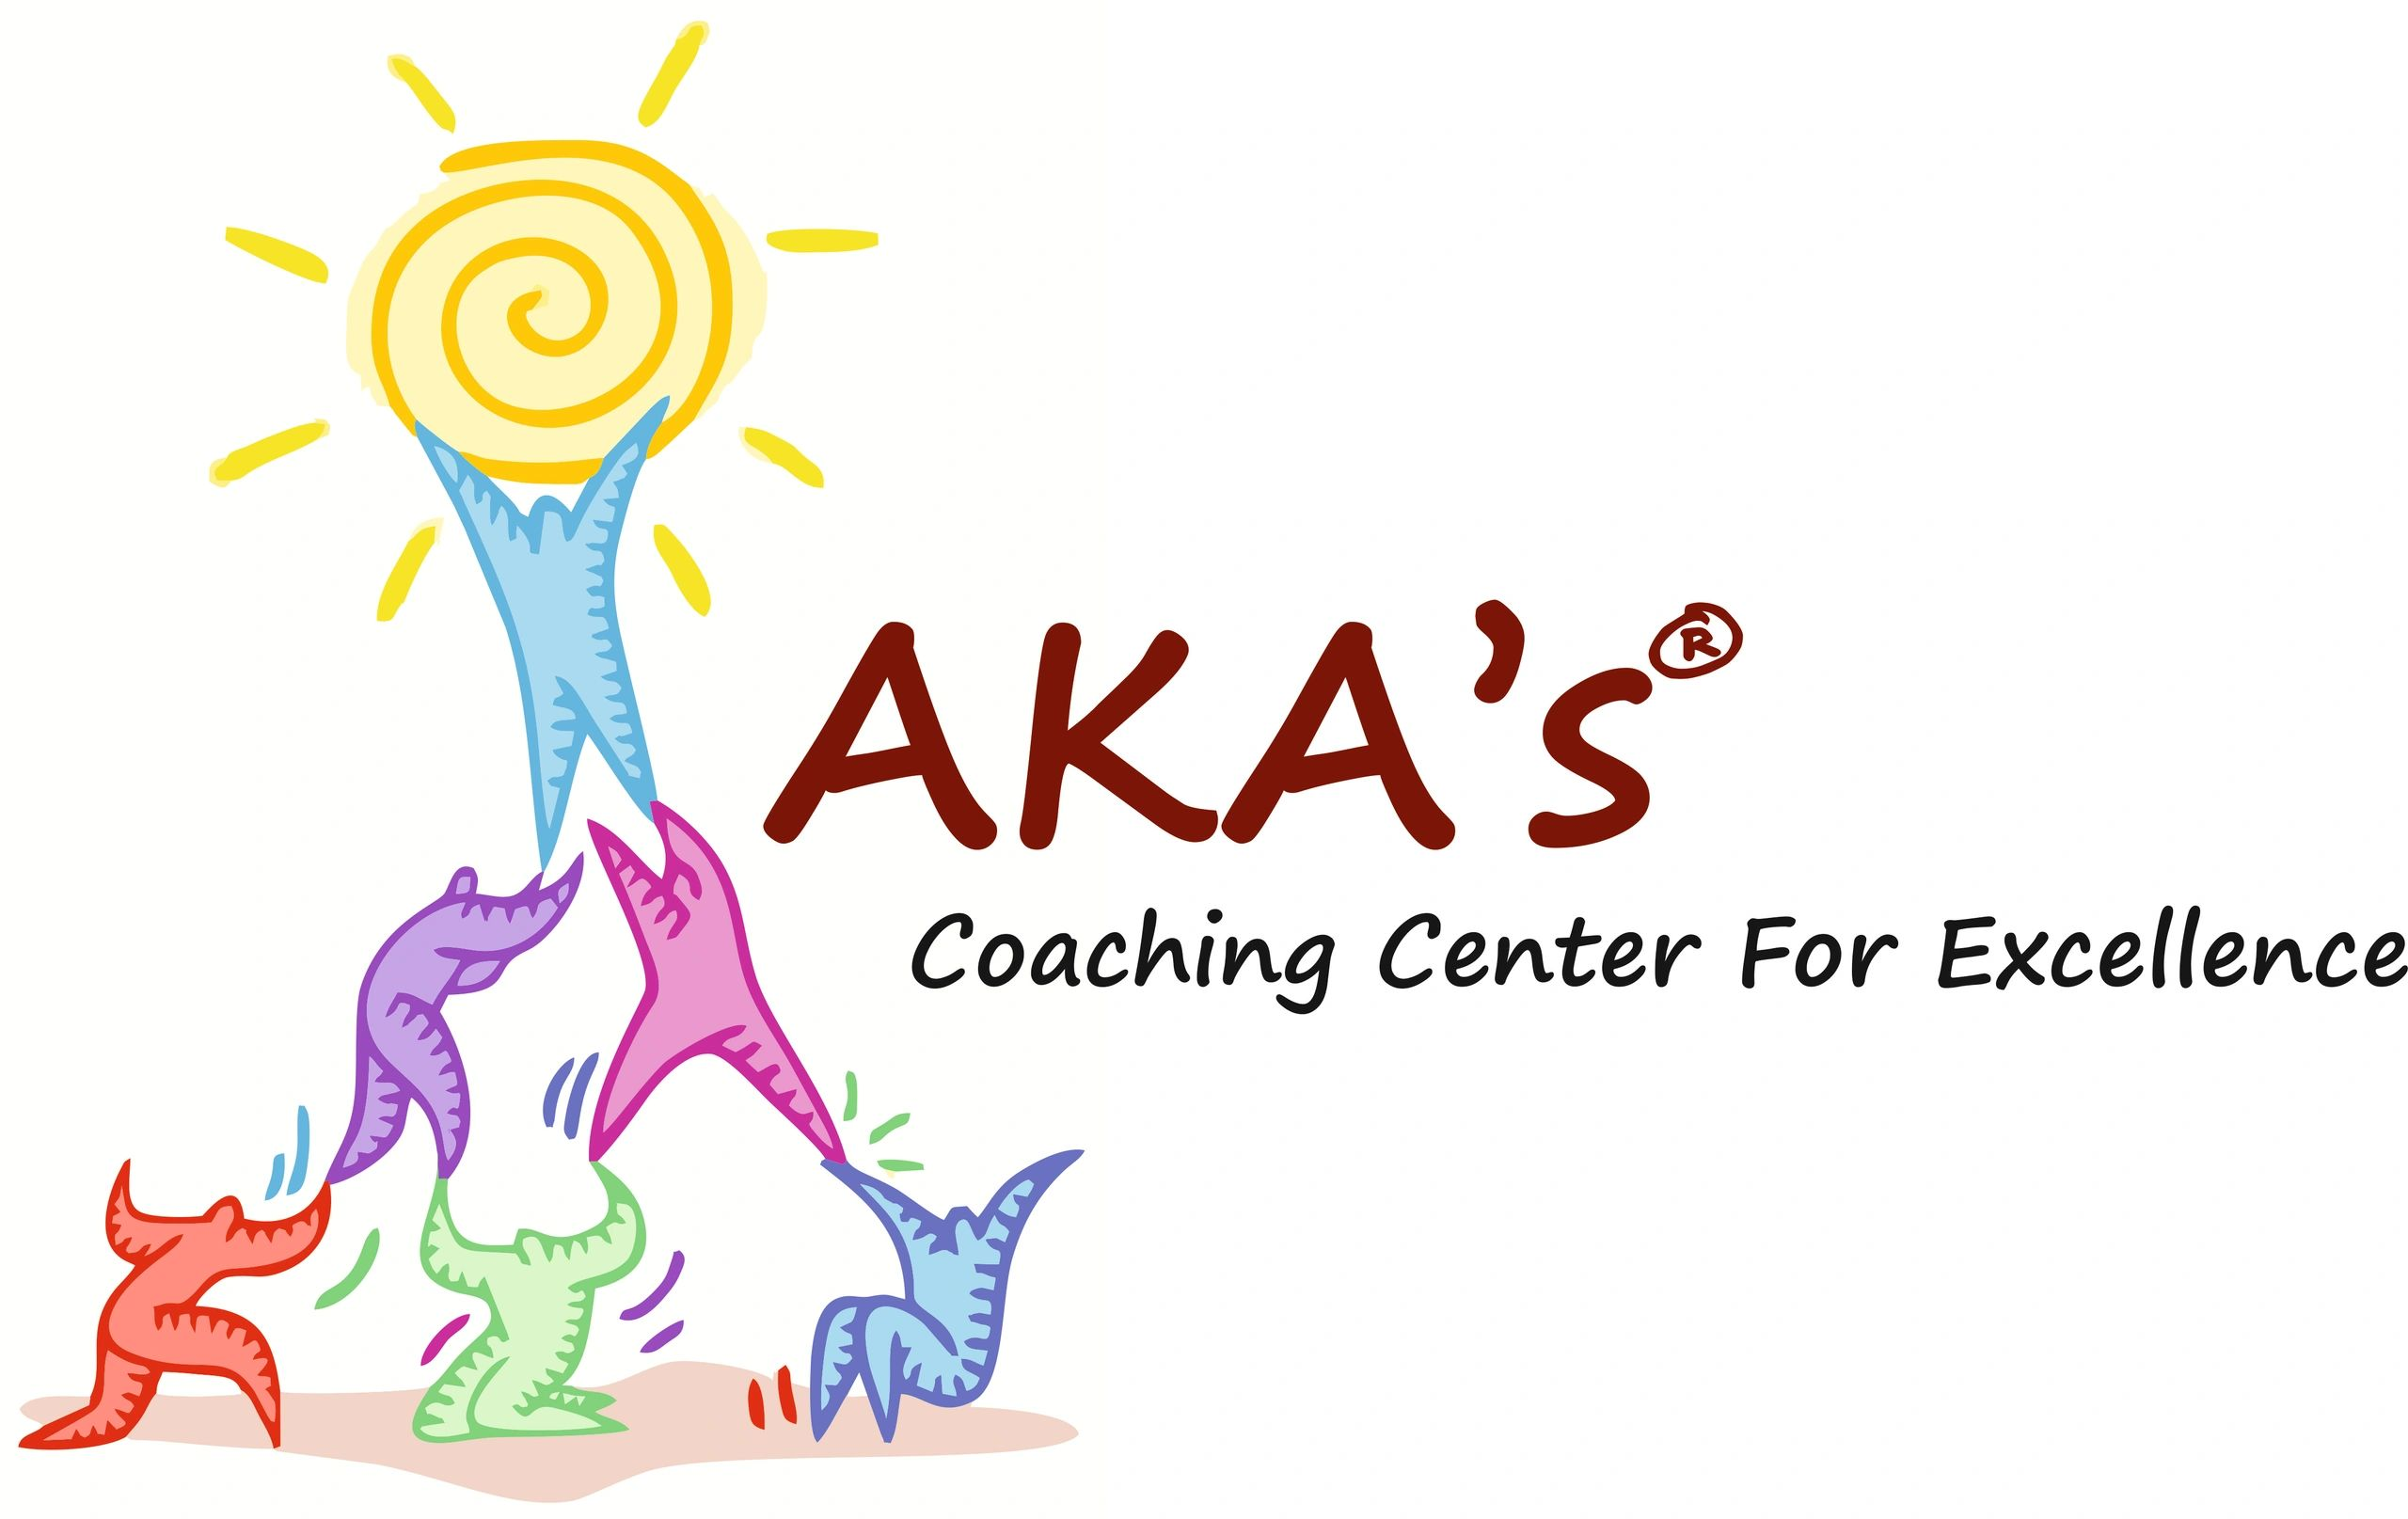 AKA's Coaching Center for Excellence LOGO